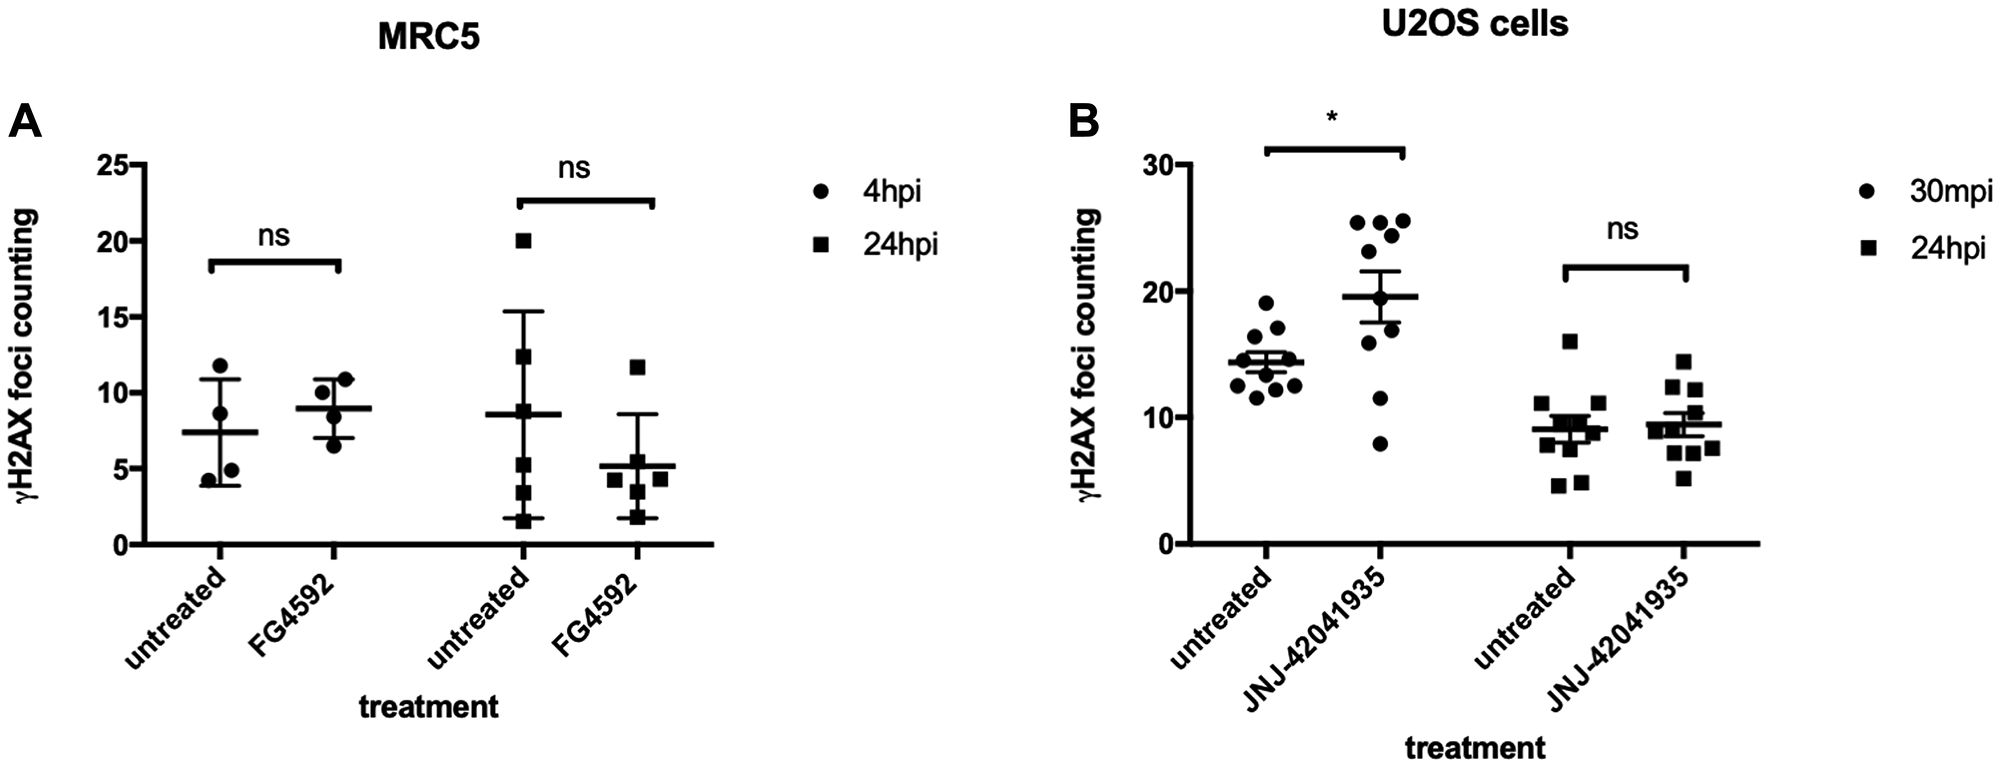 HIF activation does not protect mammalian cells from X-ray induced DNA damage.